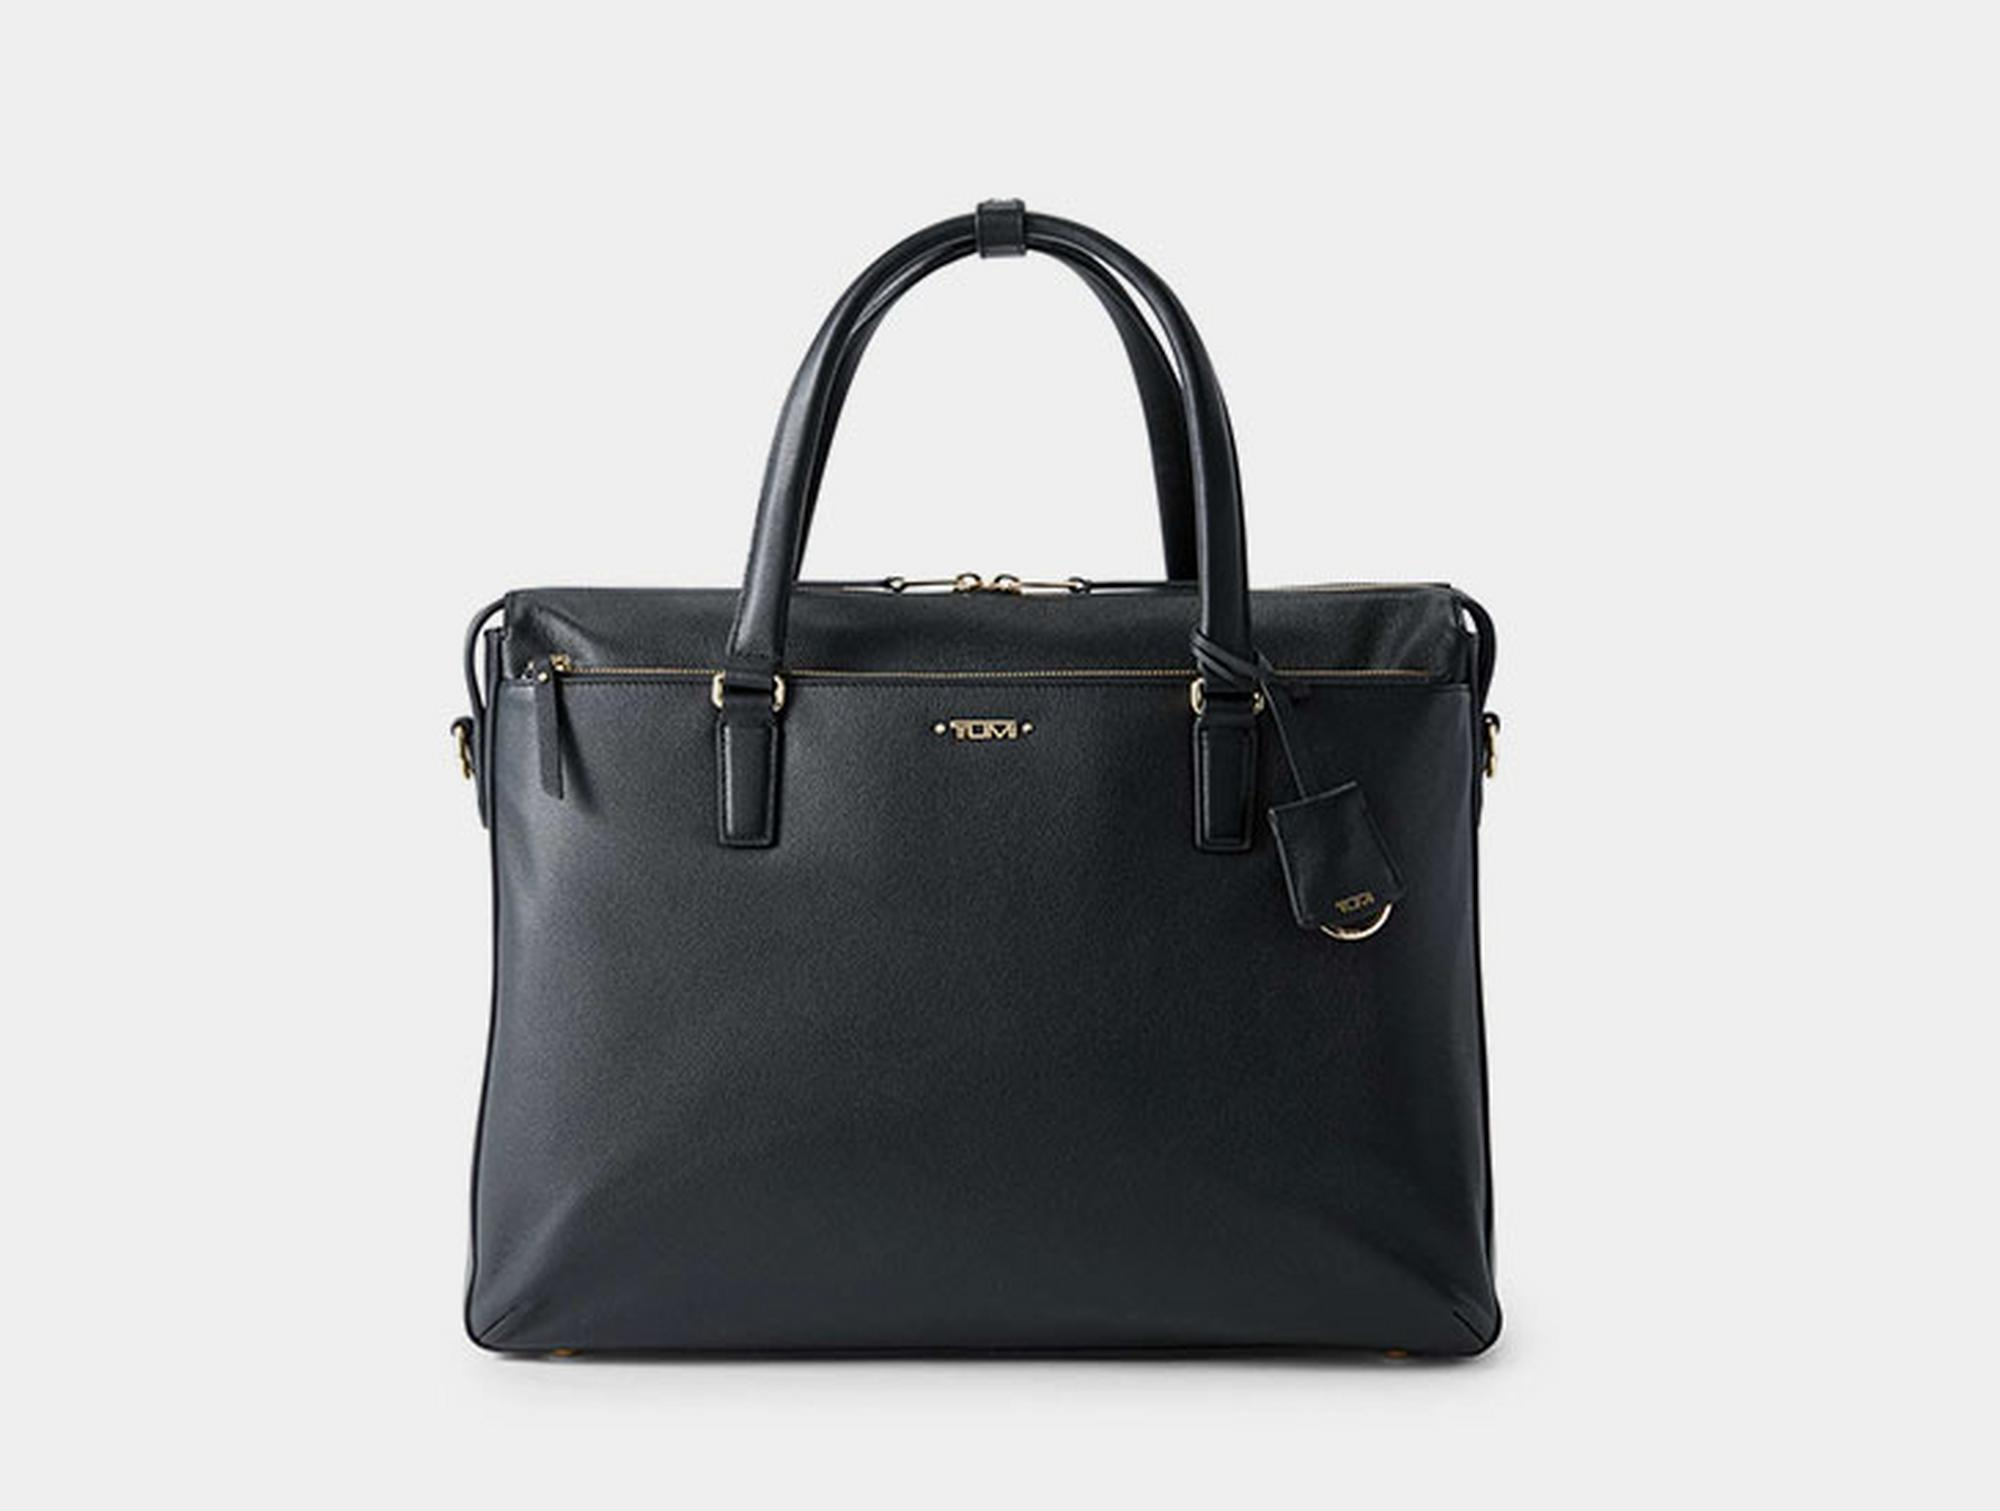 9493561f Briefcases & Portfolios for Men & Women - Tumi United States